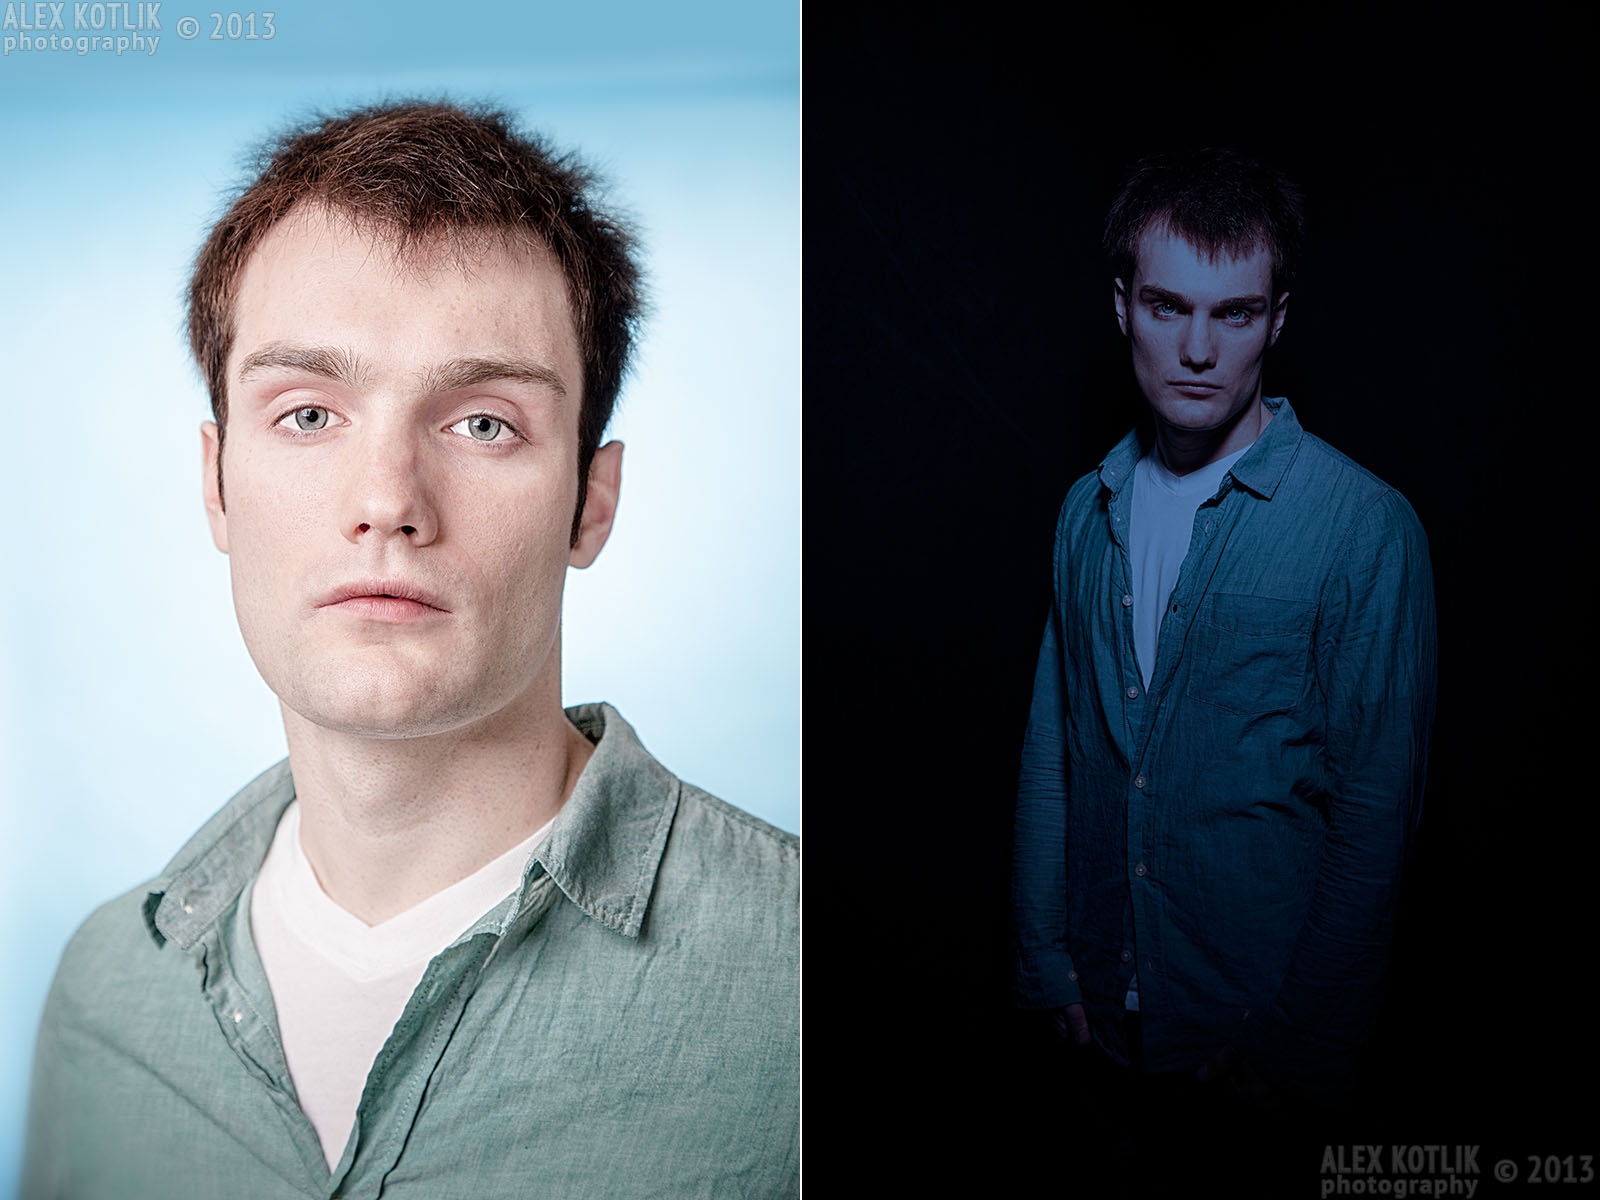 headshot and promotional photography - Tim; studio in Brooklyn, Alex Kotlik photography